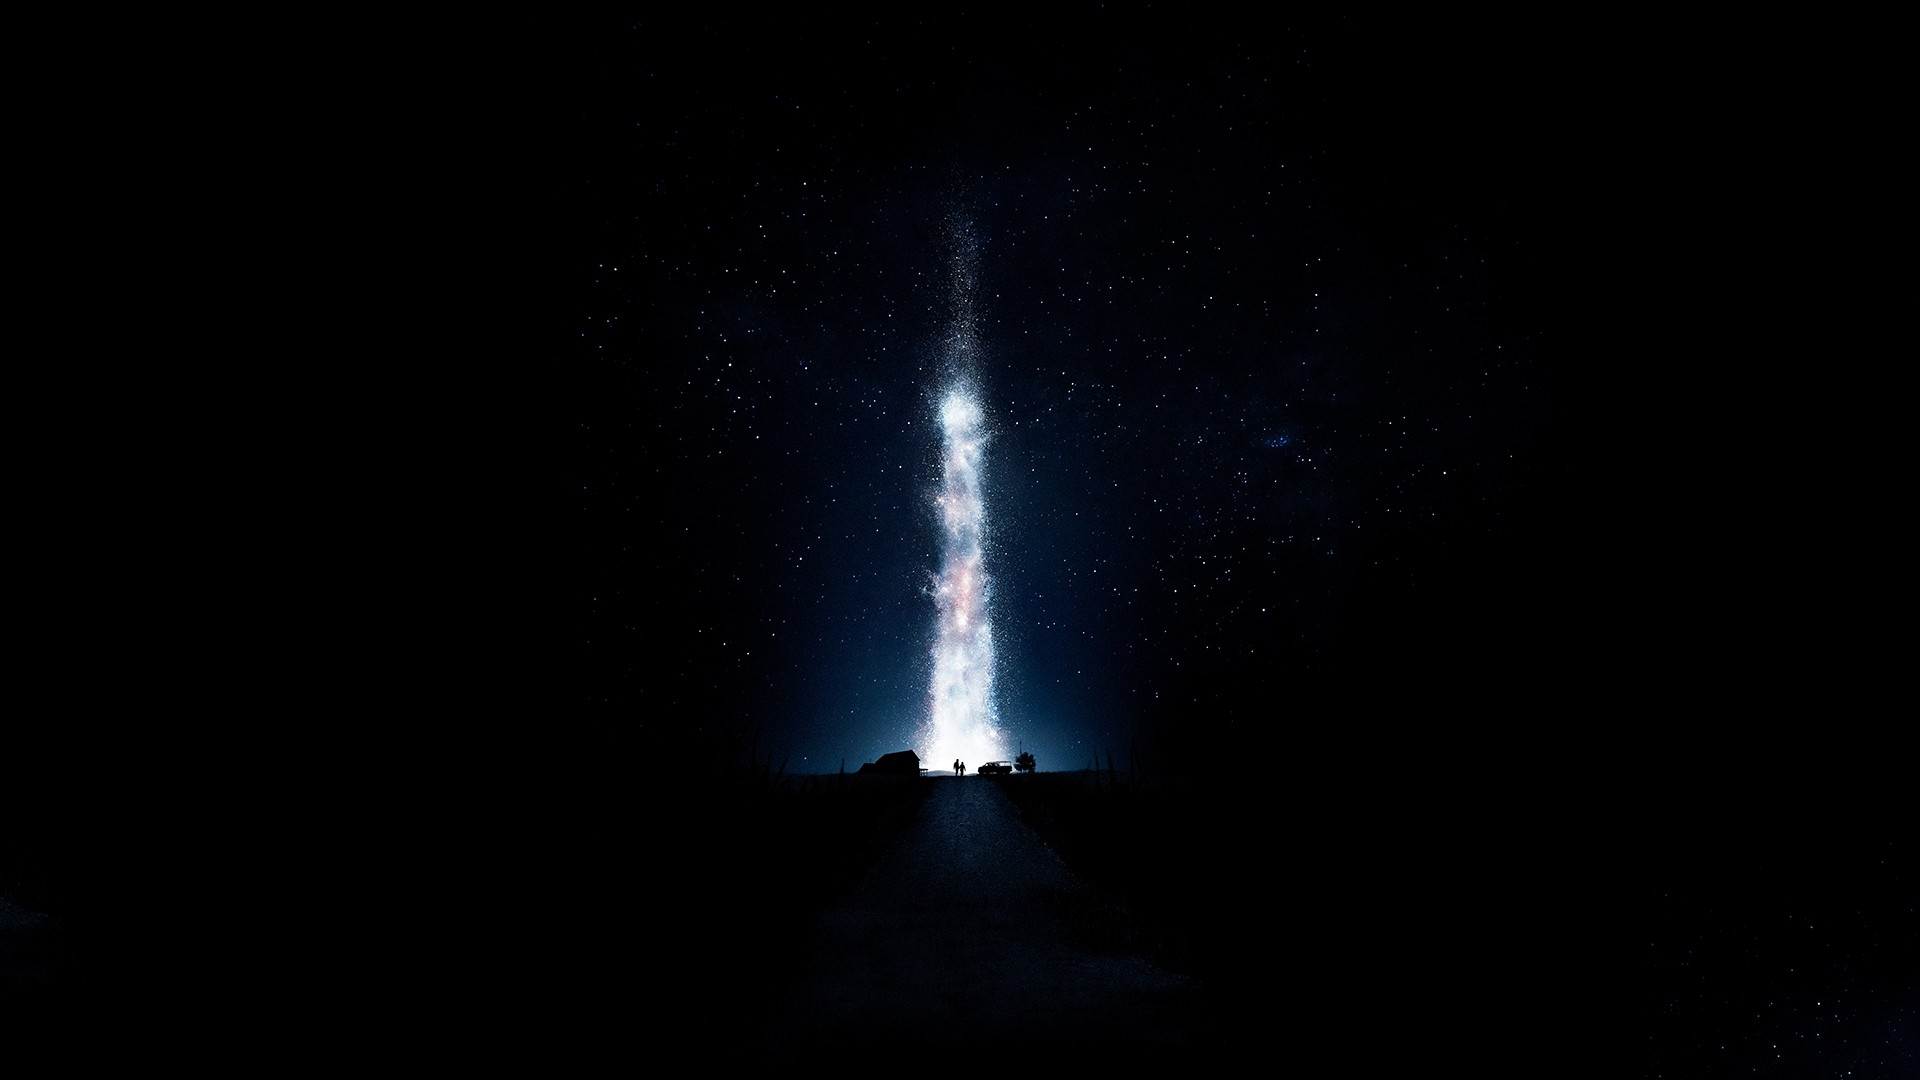 Interstellar wallpaper photo hd